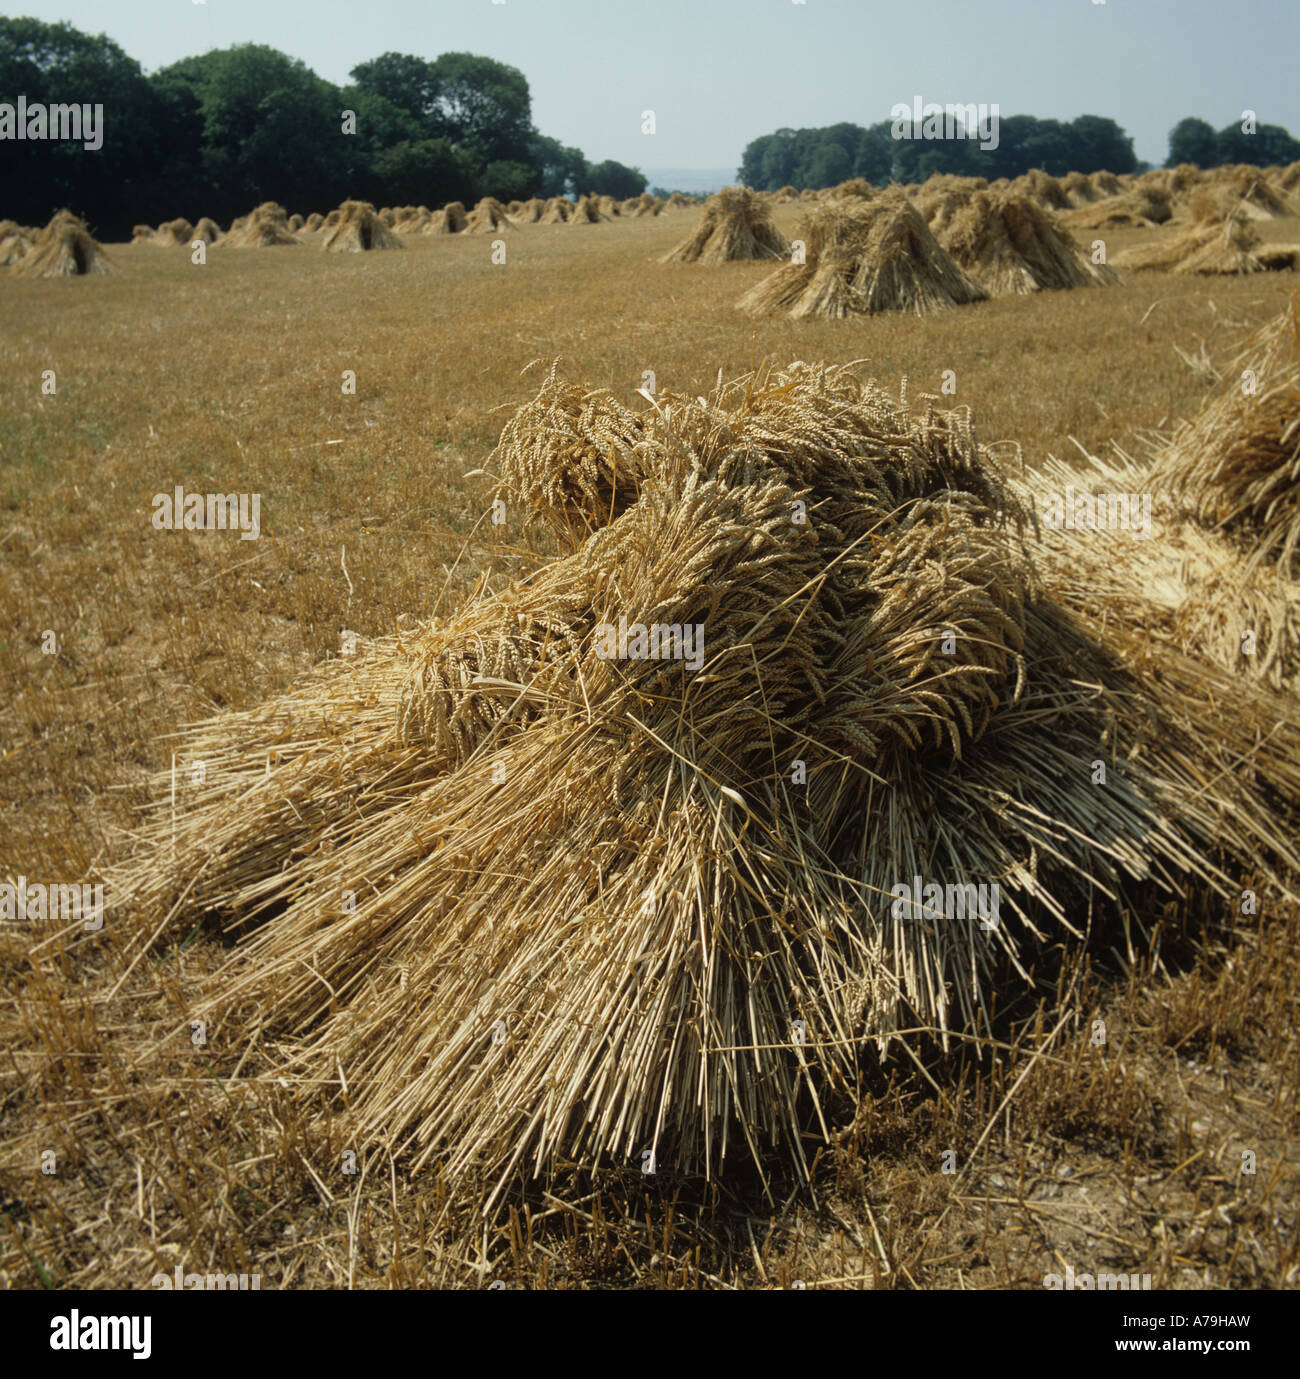 Stooks of thatching straw from long strawed wheat crop Hampshire - Stock Image